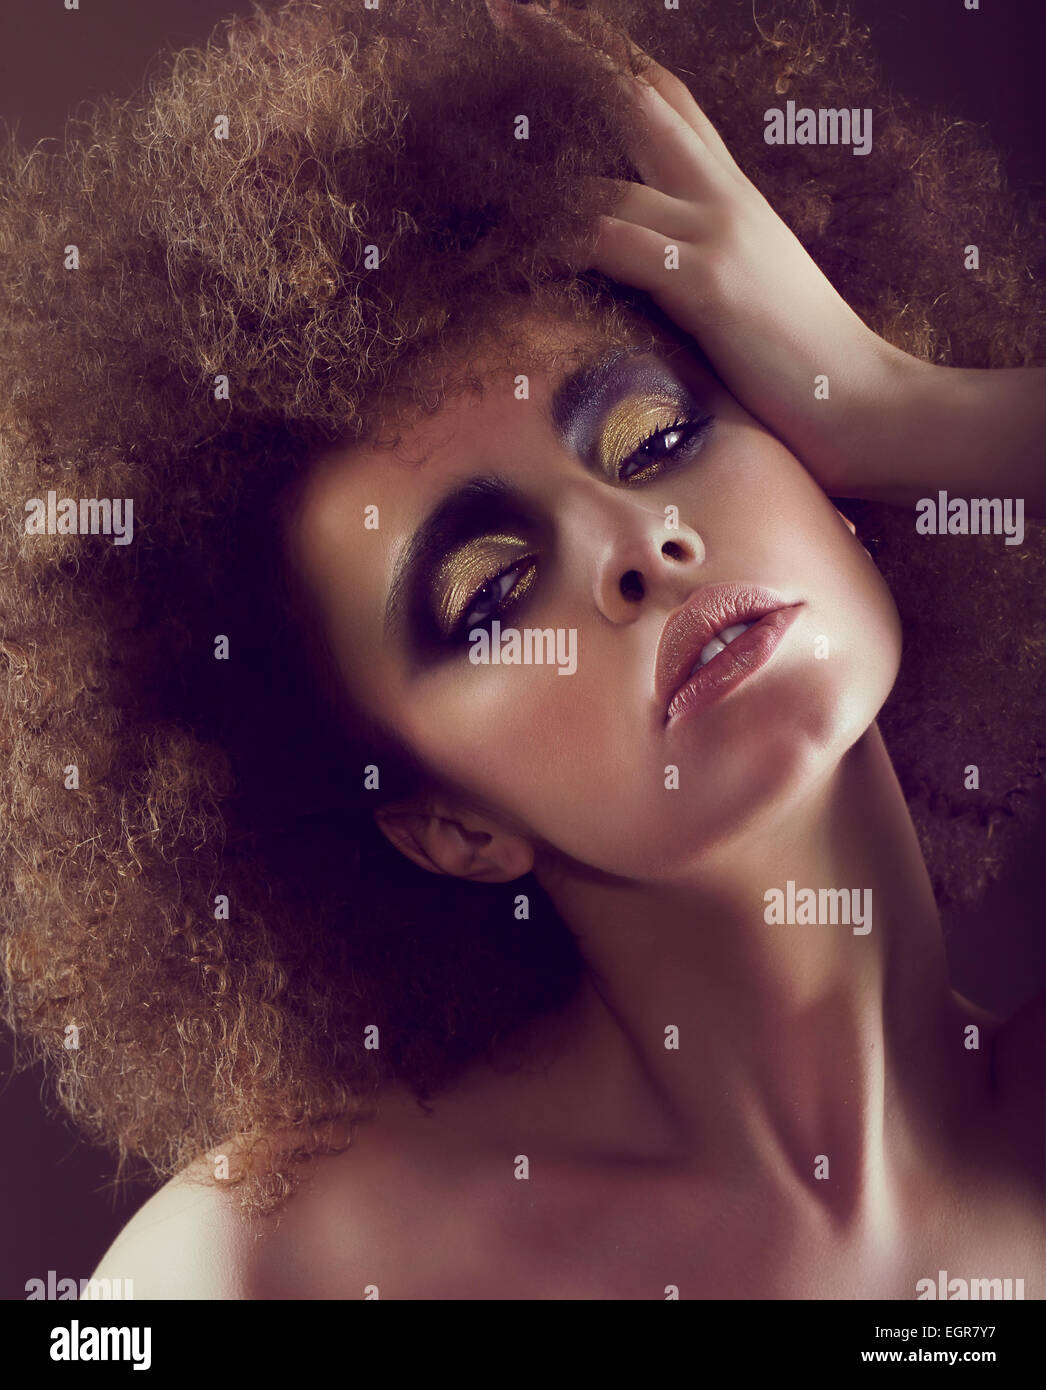 Dreamy Woman with Frizzy Hairstyle and Golden Eyeshadow - Stock Image